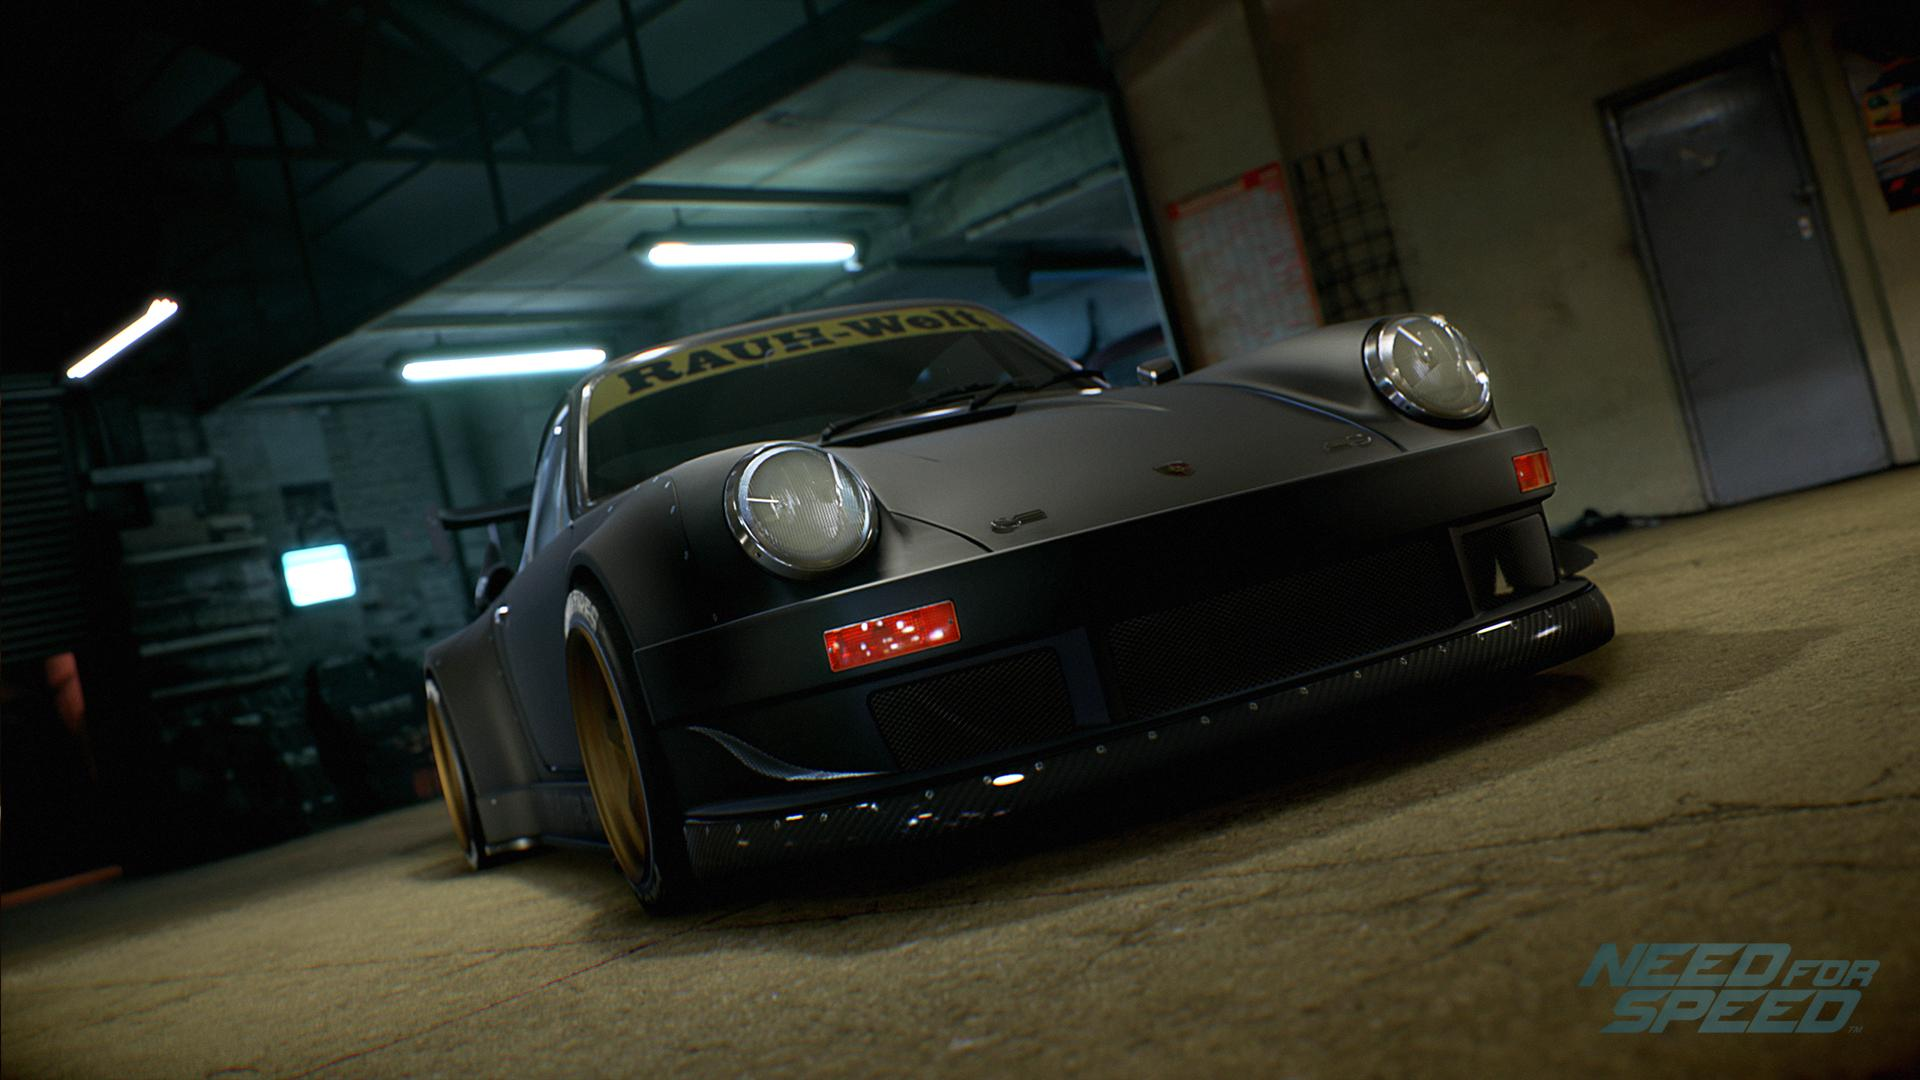 new need for speed screenshots shows porche 930 porche 933 customization options looks. Black Bedroom Furniture Sets. Home Design Ideas